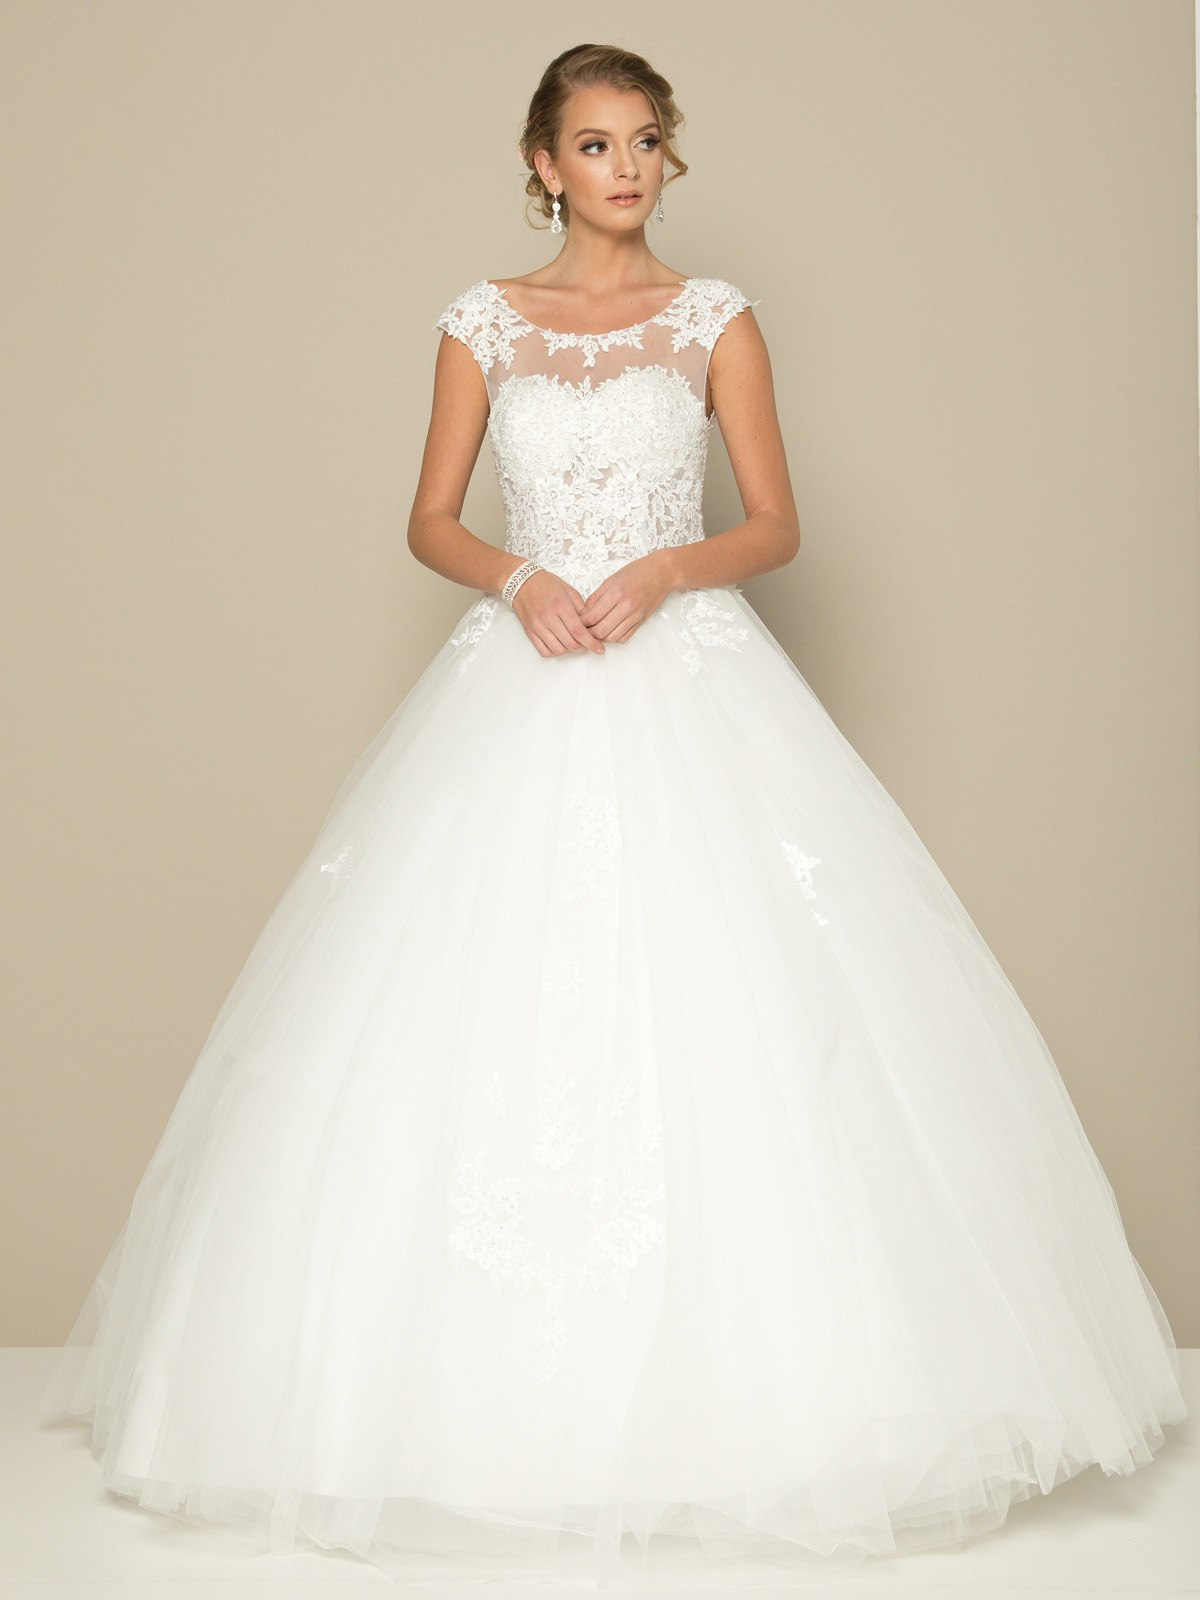 Juliet 386 Open Lace-Up Back Appliqued Wedding Ball Gown White ...